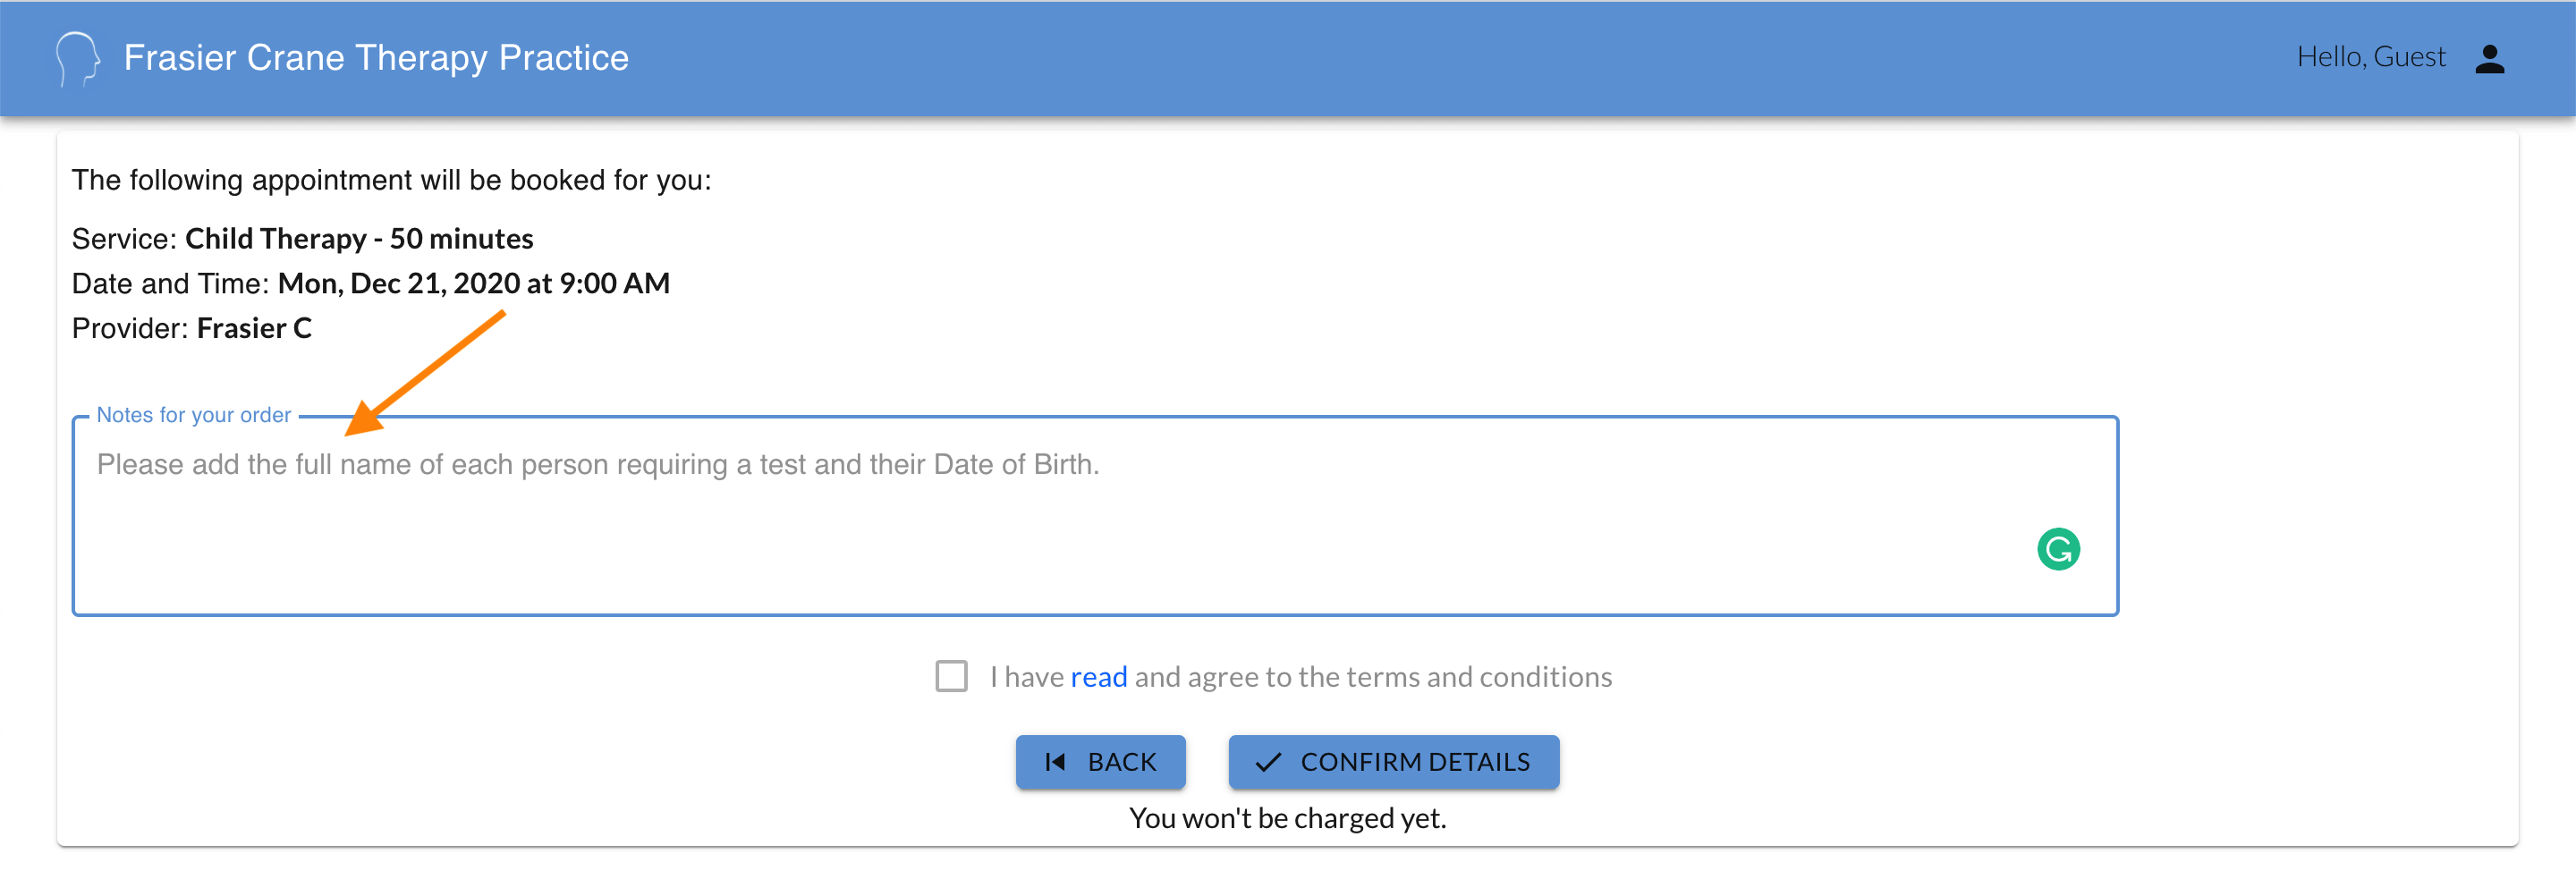 customizing text in the customer booking flow